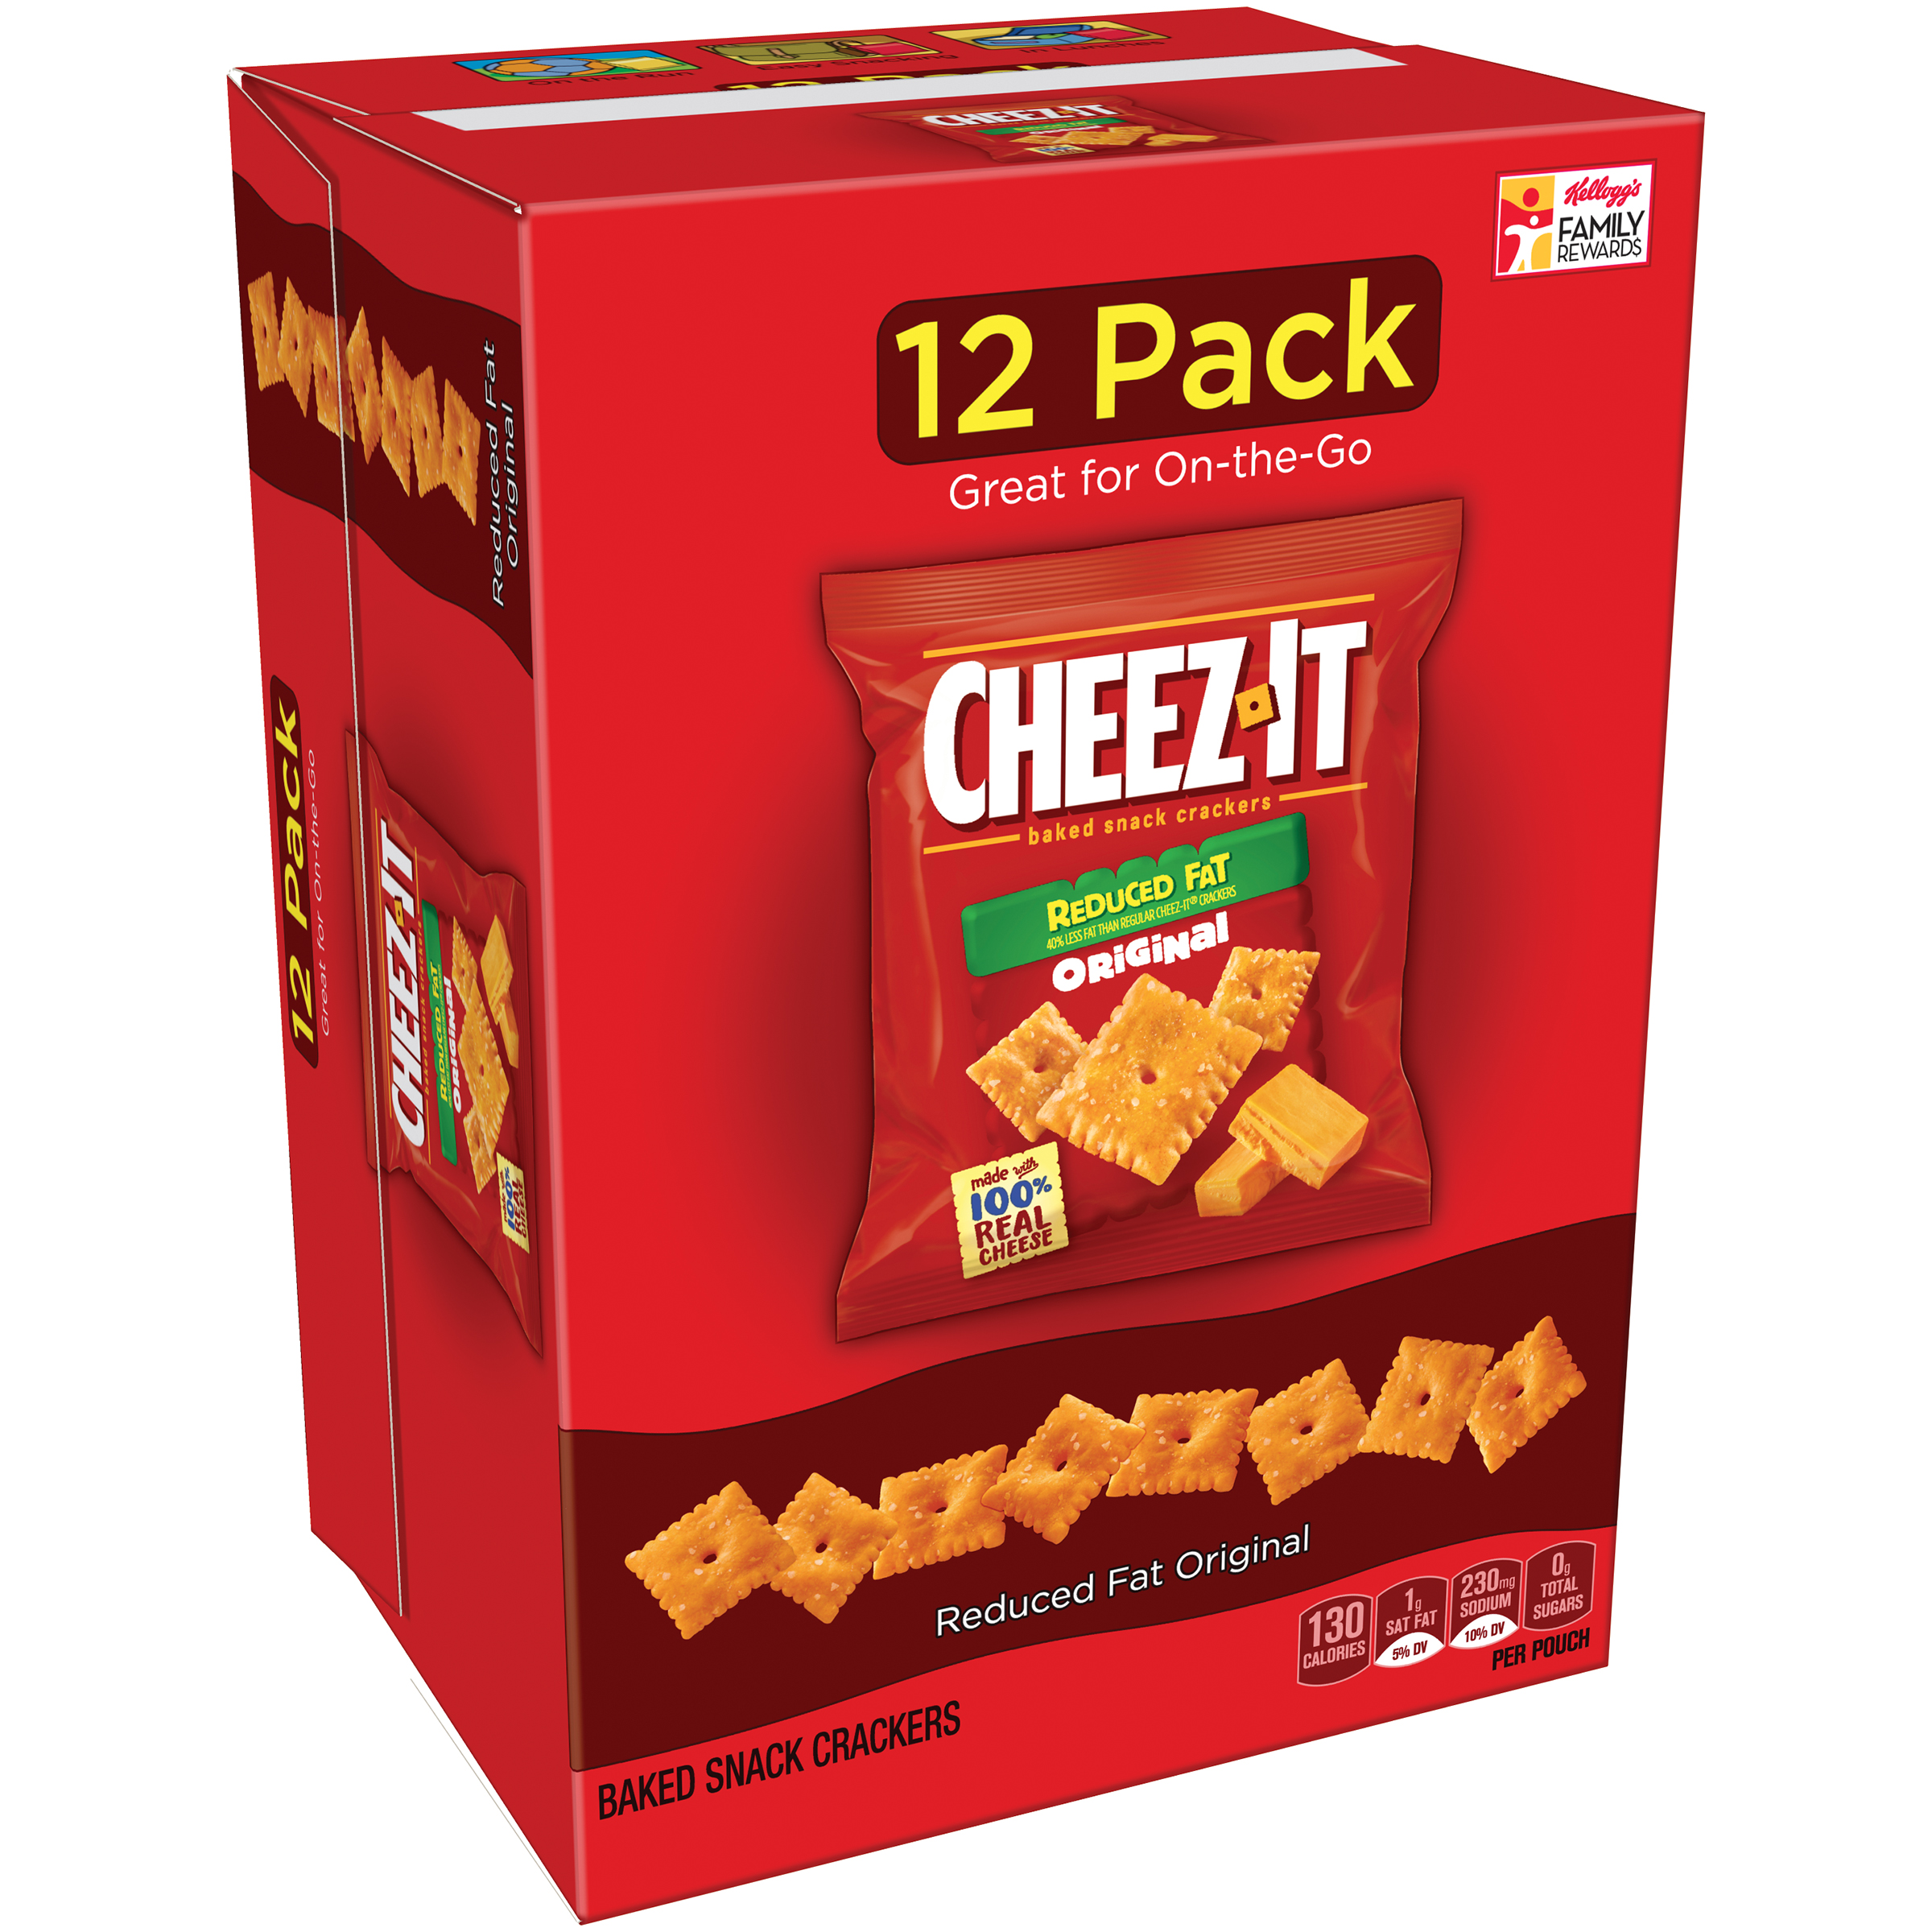 Cheez-It Reduced Fat Baked Snack Crackers, 1 oz, 12 count